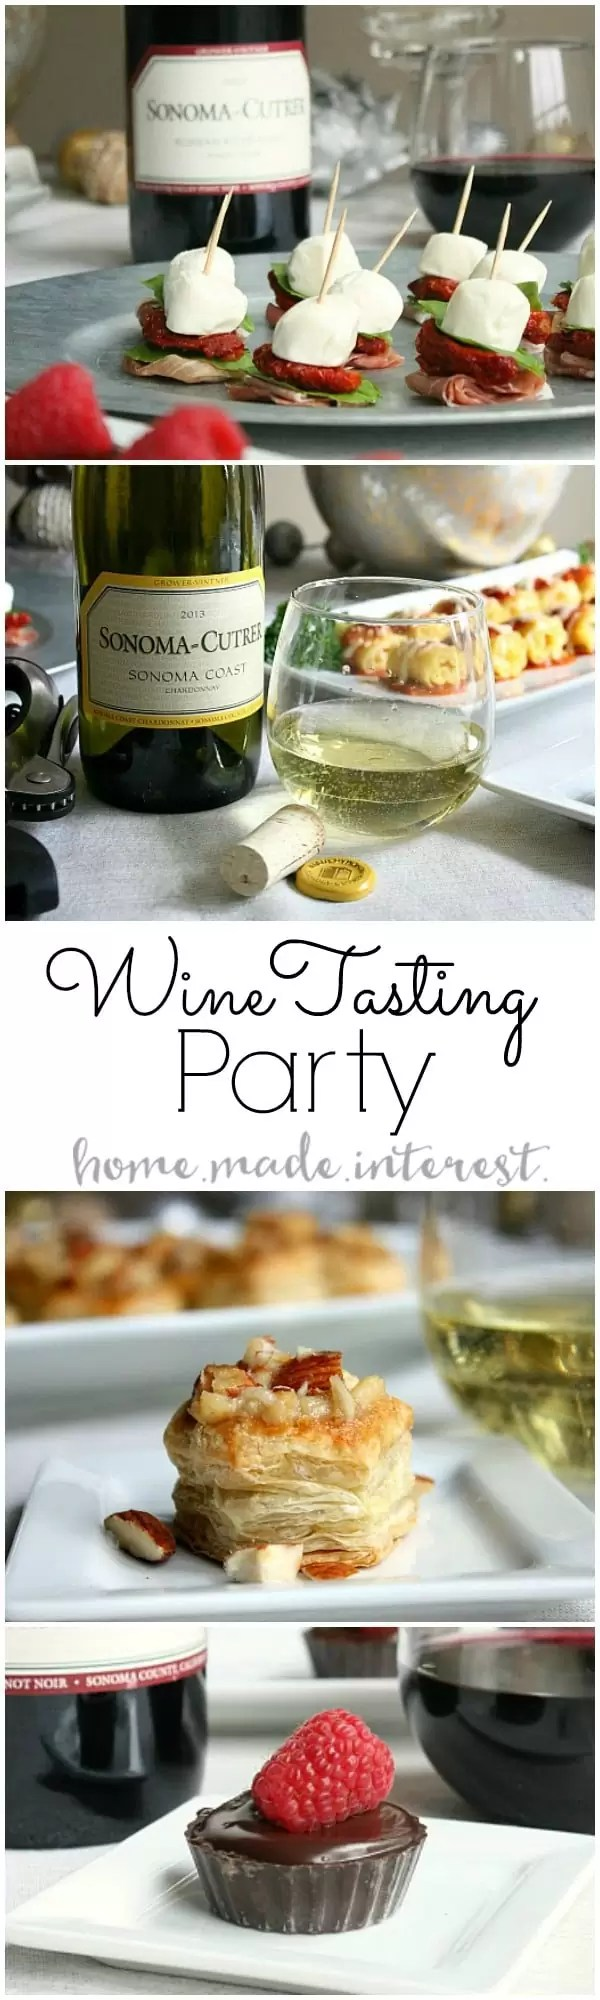 Our Wine Tasting Party was all about trying new foods and tasting new wines. We had so much fun coming up with new recipes to pair with Sonoma Cutrer wines and our guests left happy!